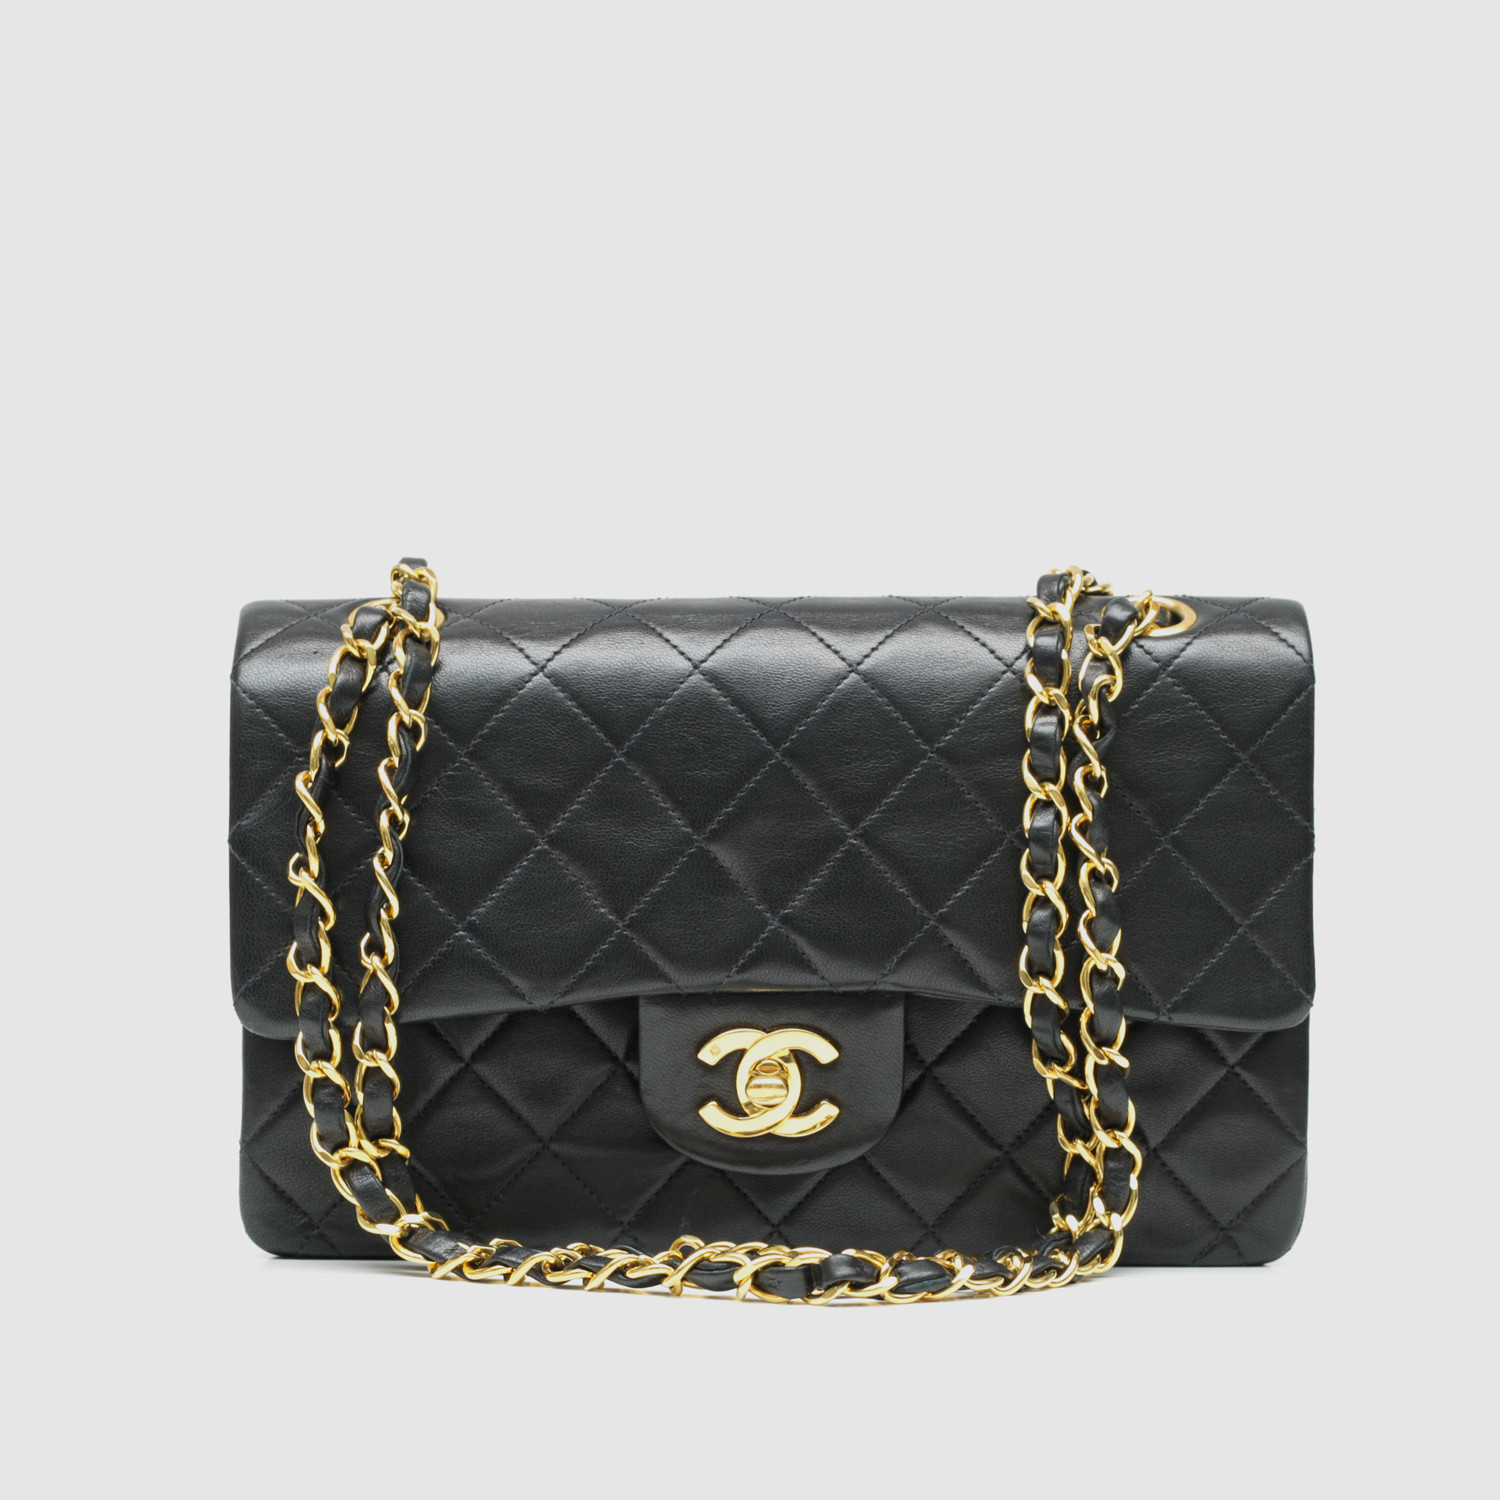 36014ef0fb7 Vintage Chanel Small Flap Bag    Black Quilted Lambskin    CHAN27 ...